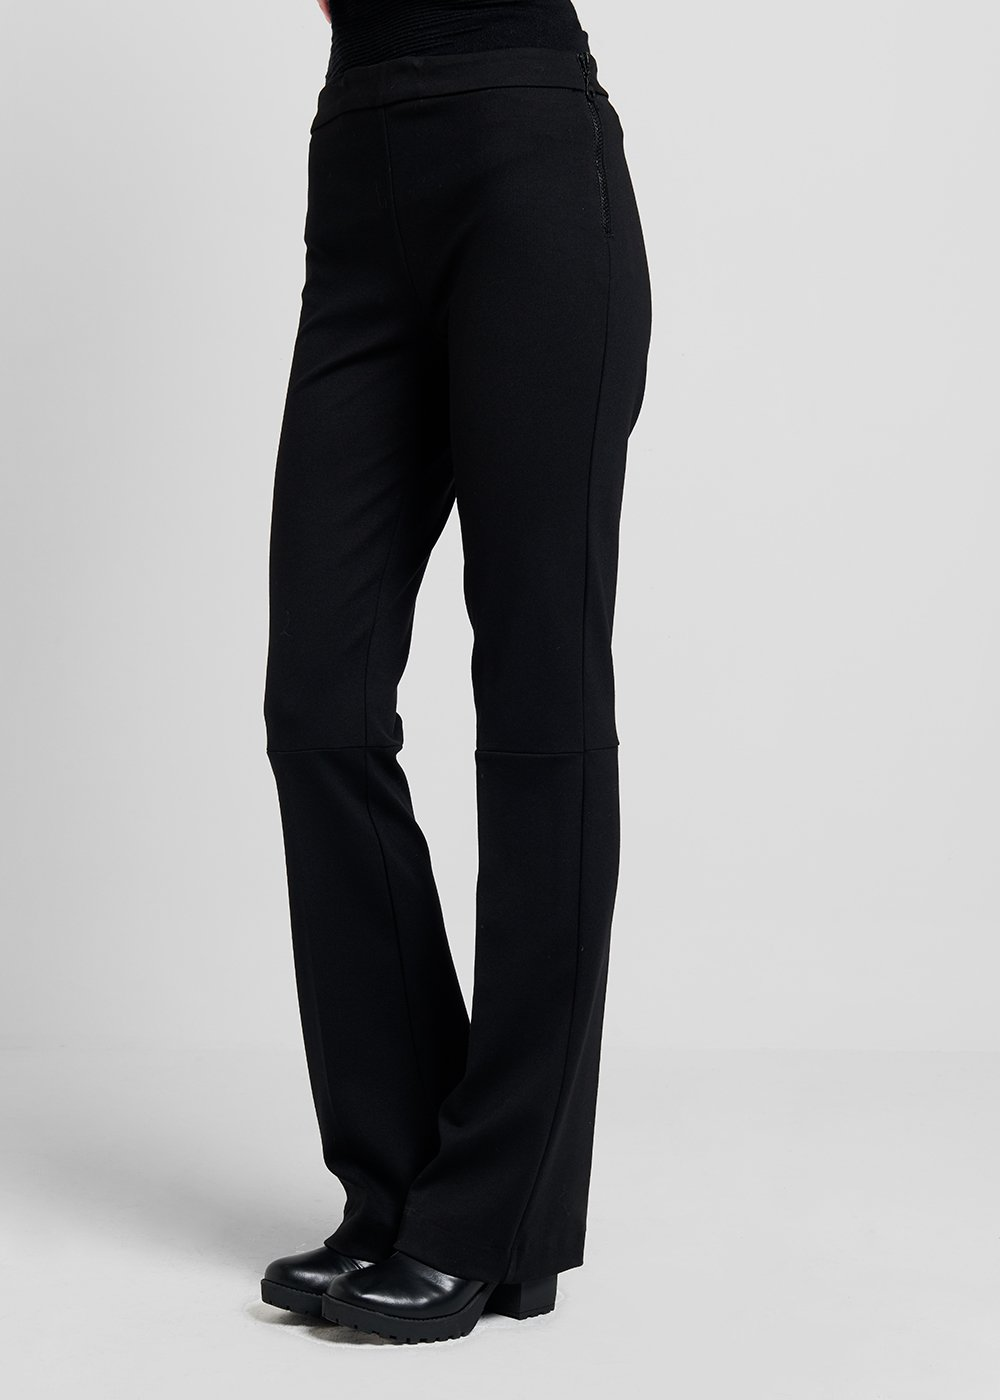 Victoria trousers in technical fabric - Black - Woman